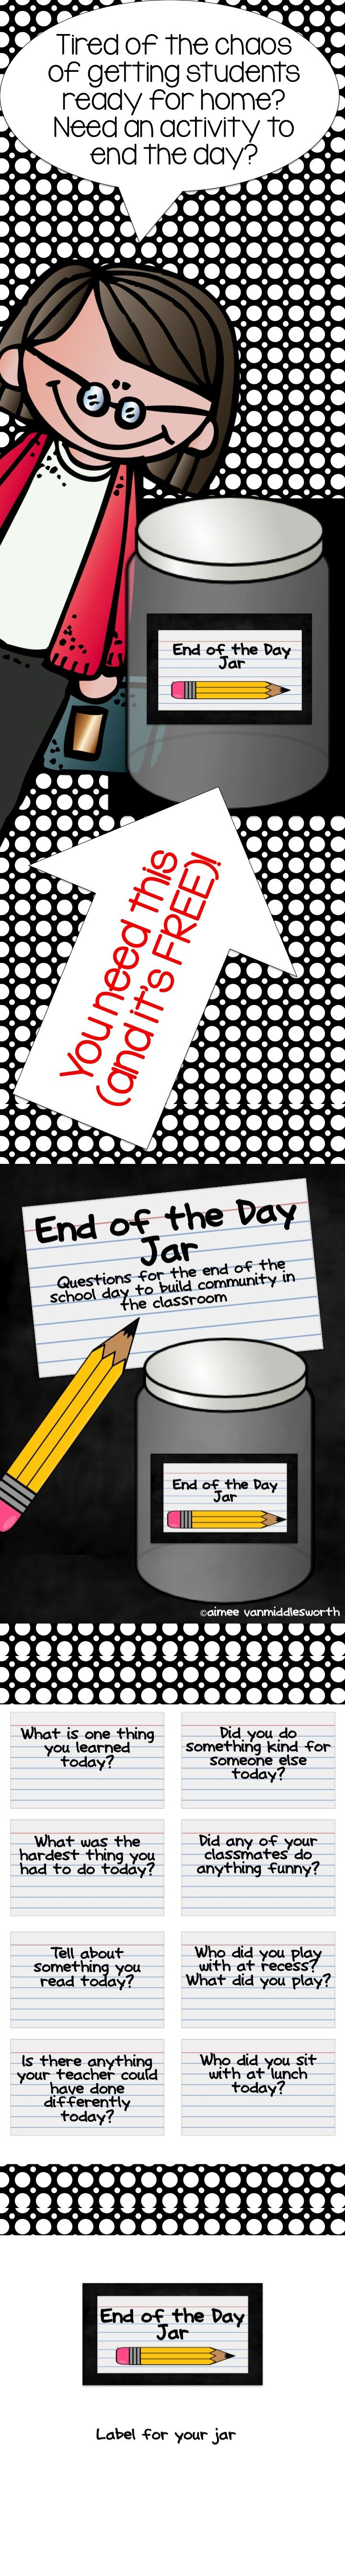 FREE!! The End of the DayJar is a great way to end the school day and wonderful for classroom management!